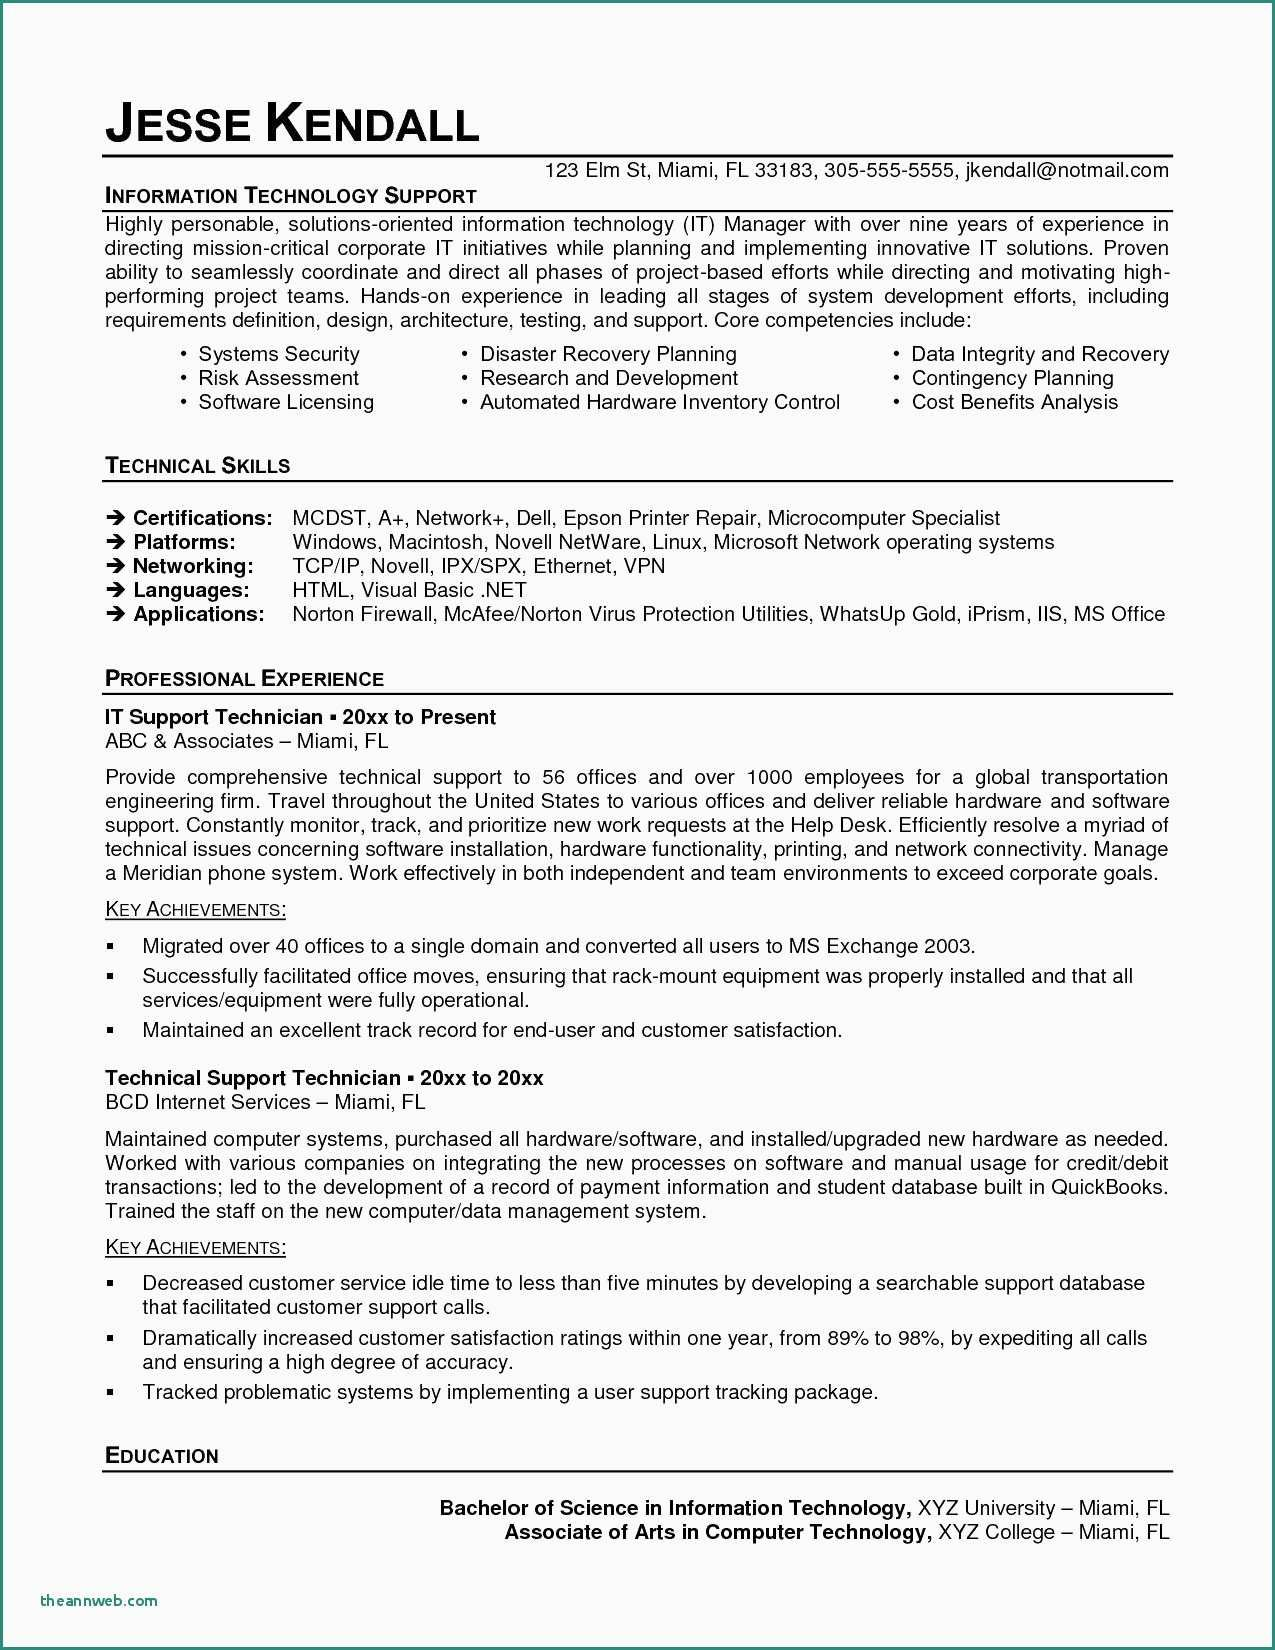 Pin By Moci Bow On Resume Templates Pinterest Resume Resume